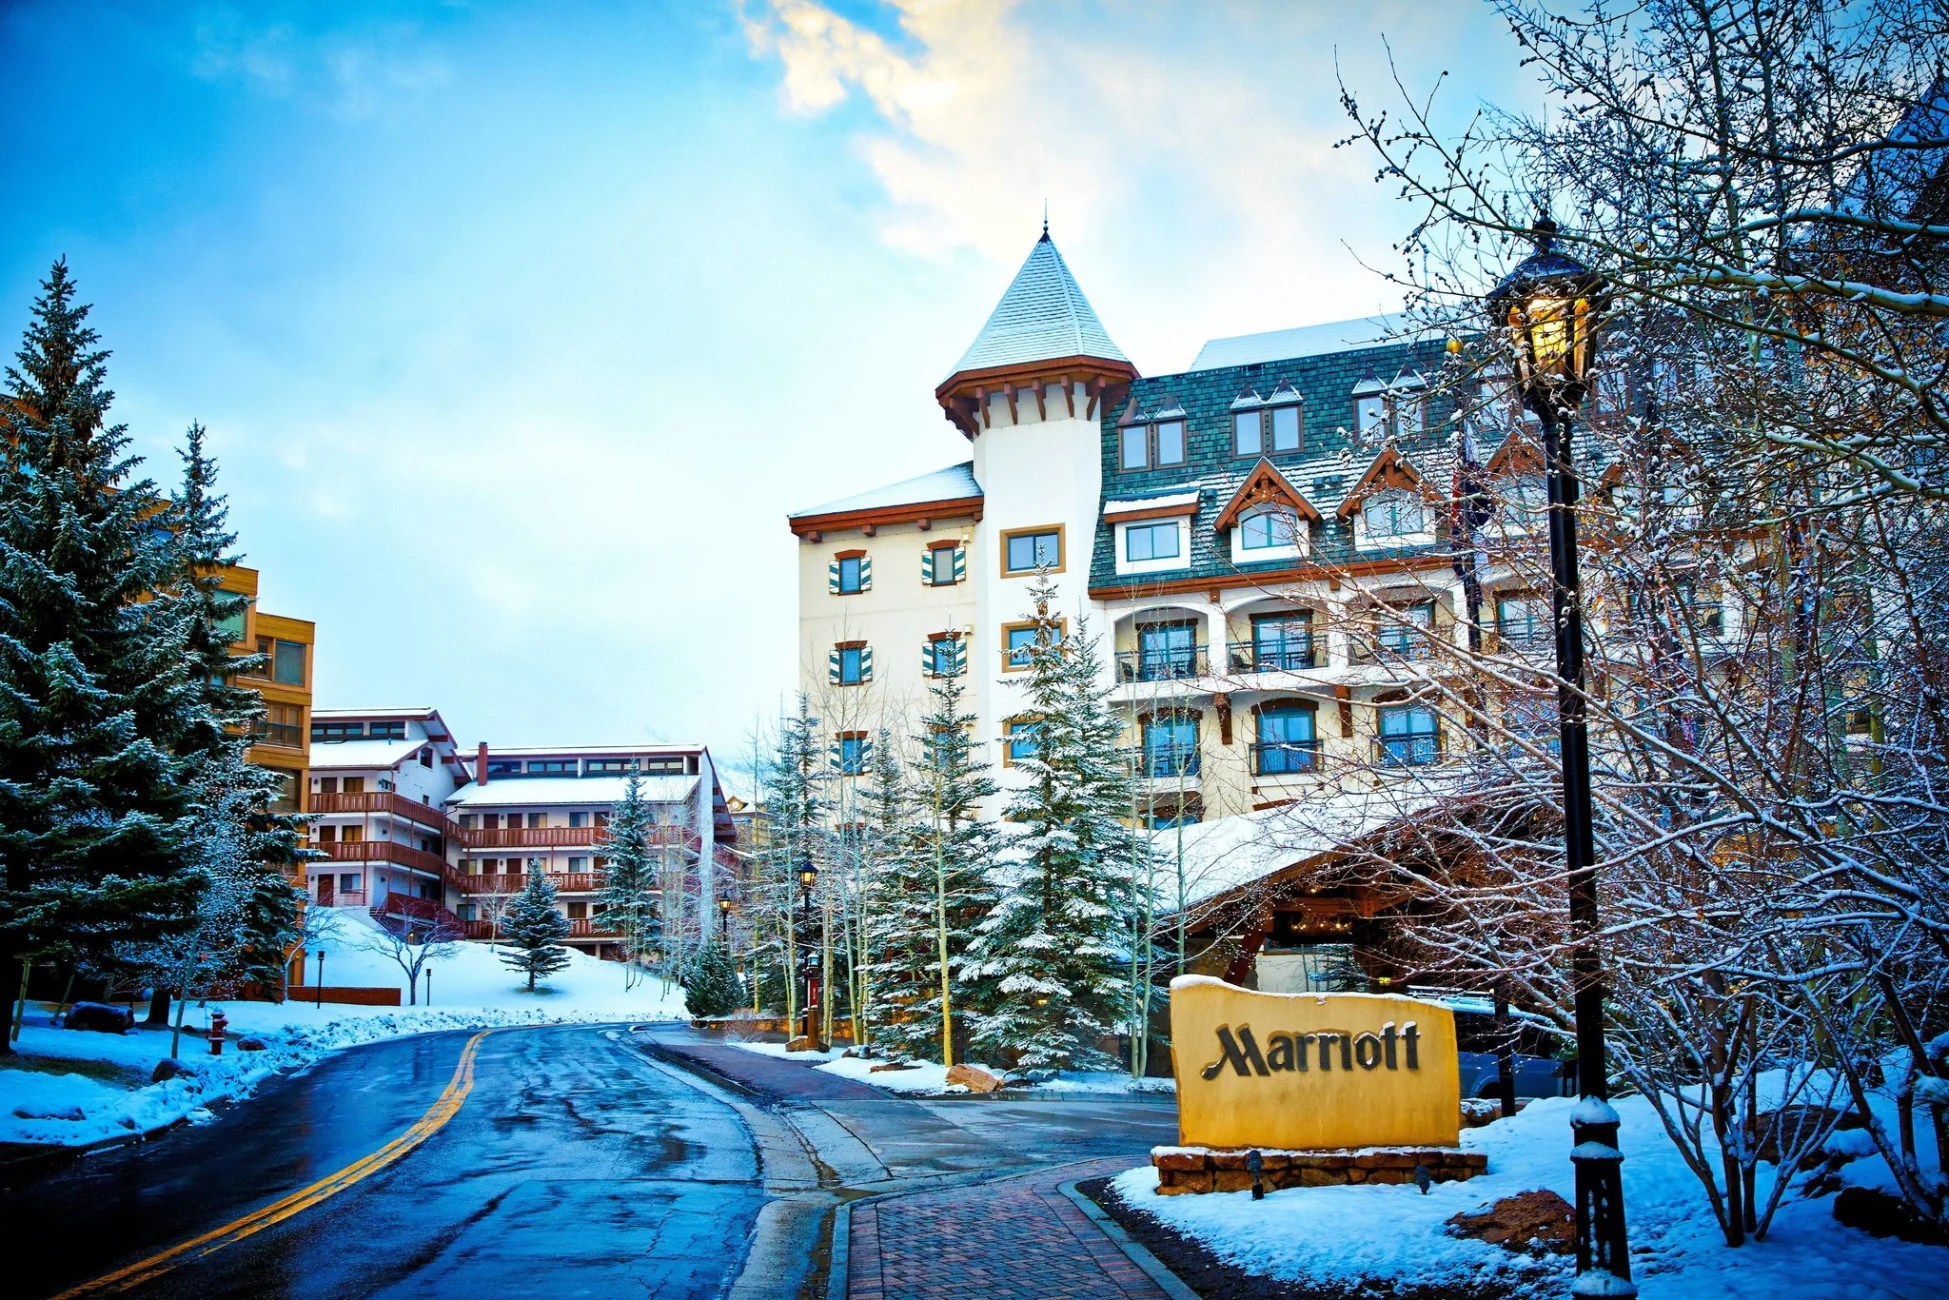 Tivoli Lodge Vail Resort Vail Marriott Mountain Resort Vail Trivago